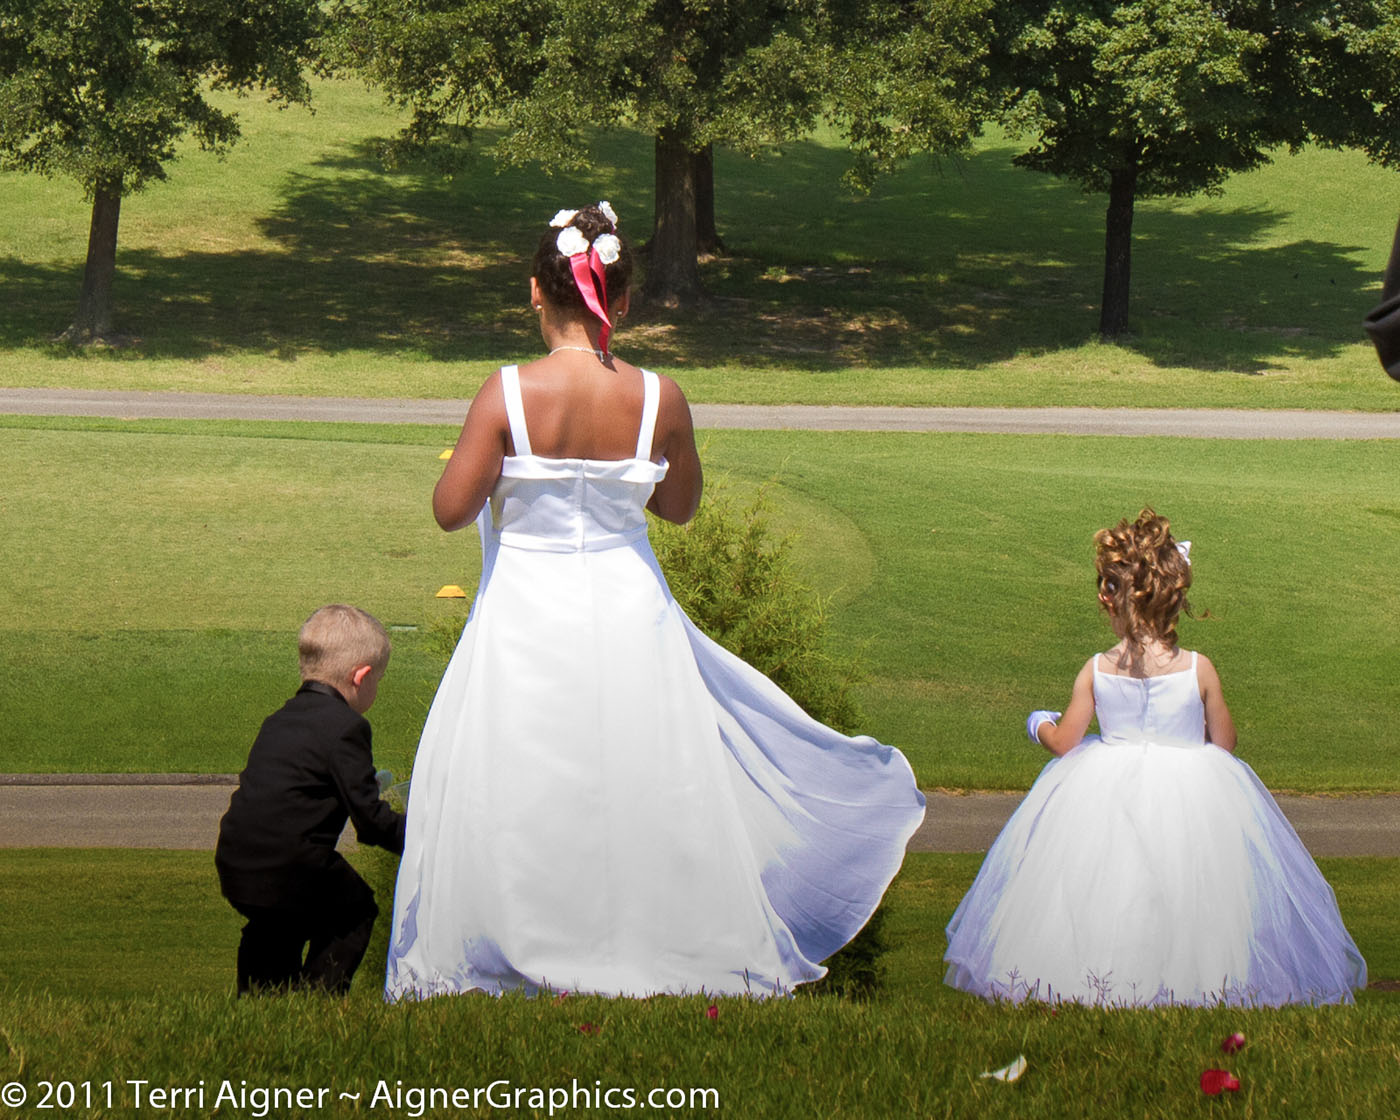 bride-and-groom-50-of-1-22